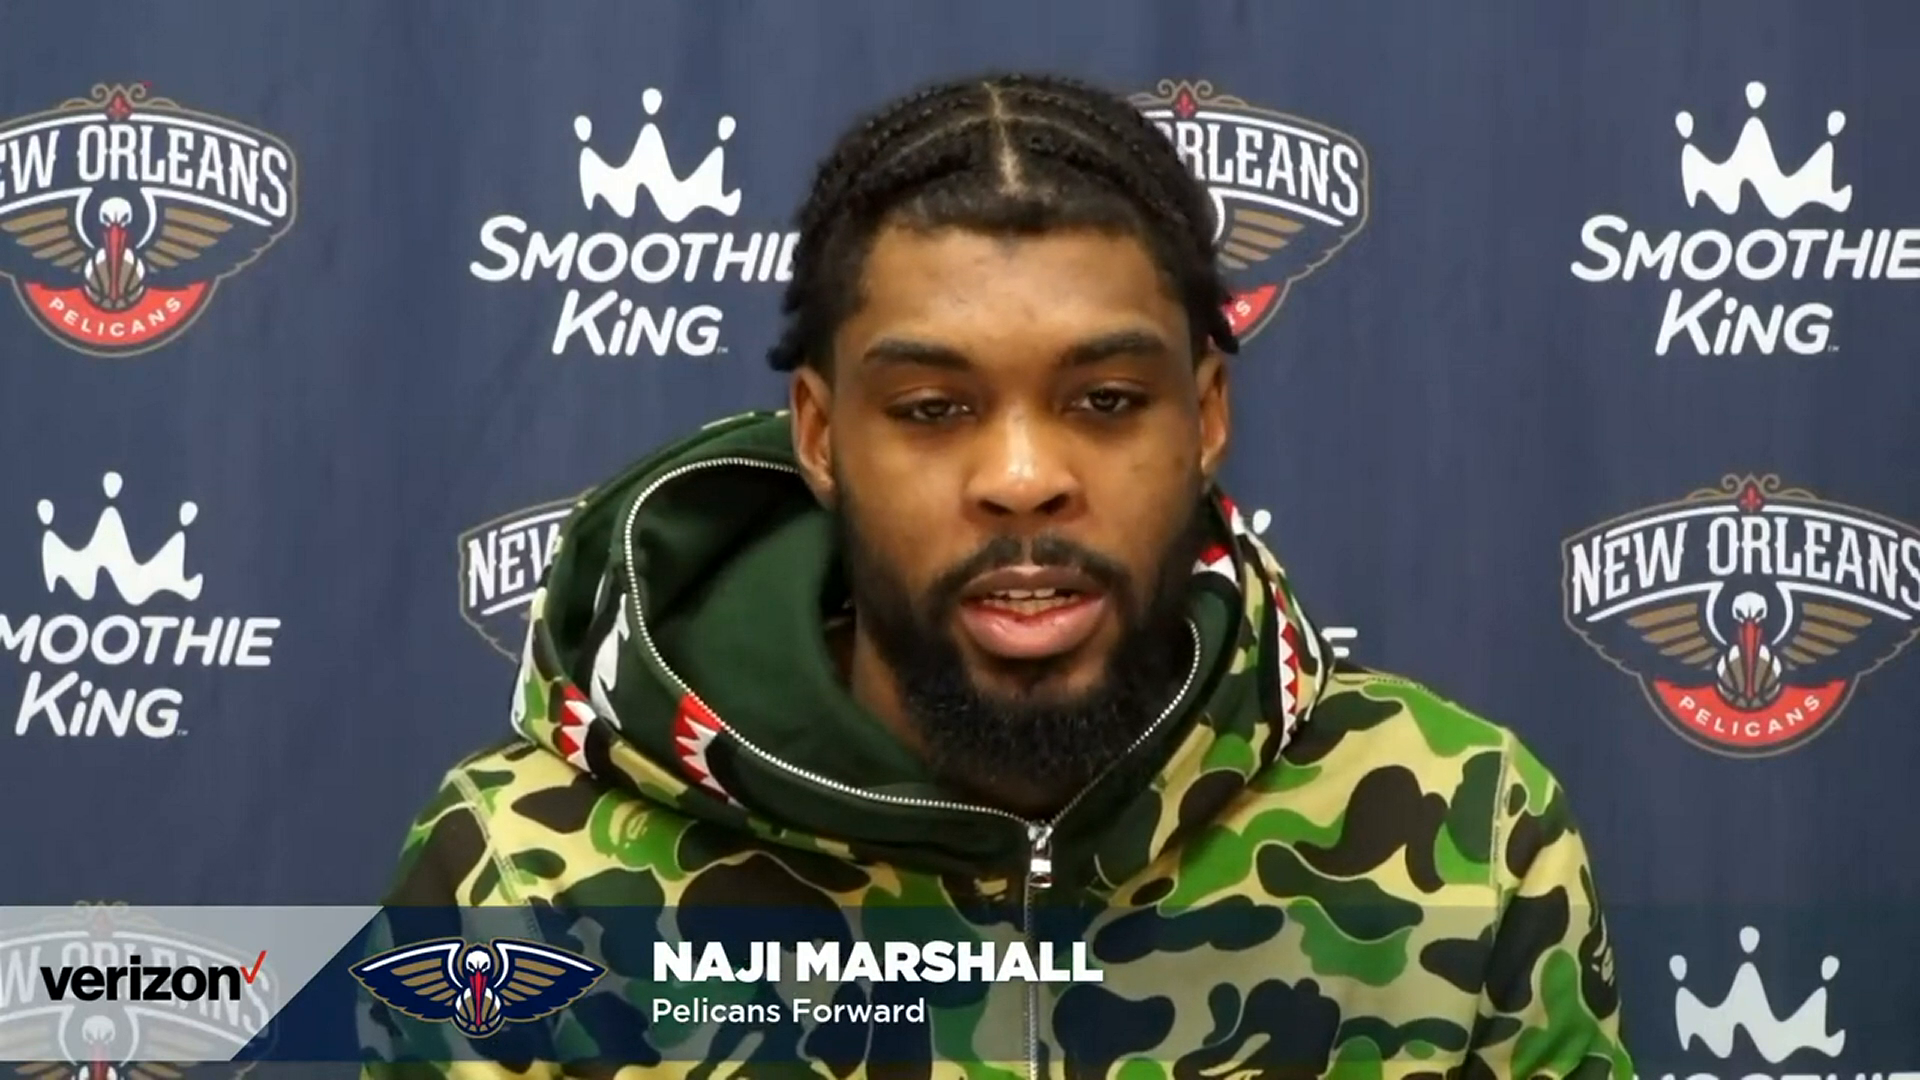 Pelicans-Grizzlies Postgame Interview: Naji Marshall 5-10-21